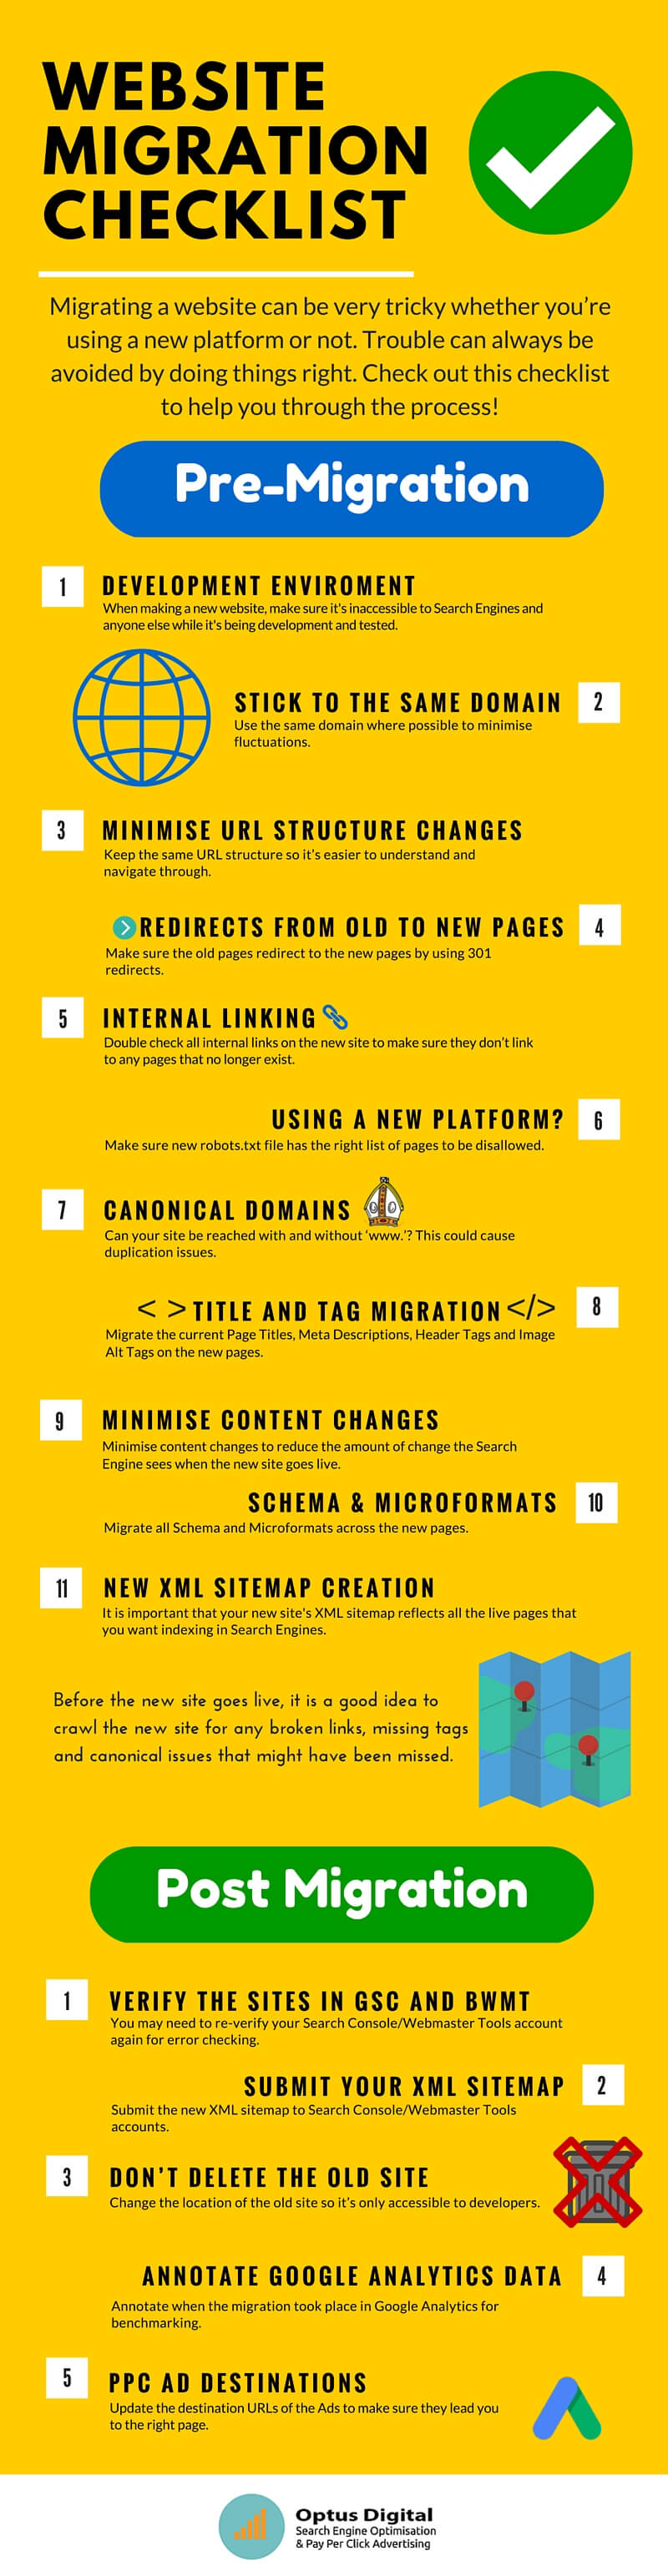 How To Transfer Website From One Host To Another - WEBSITE MIGRATION CHECKLIST - Infographic